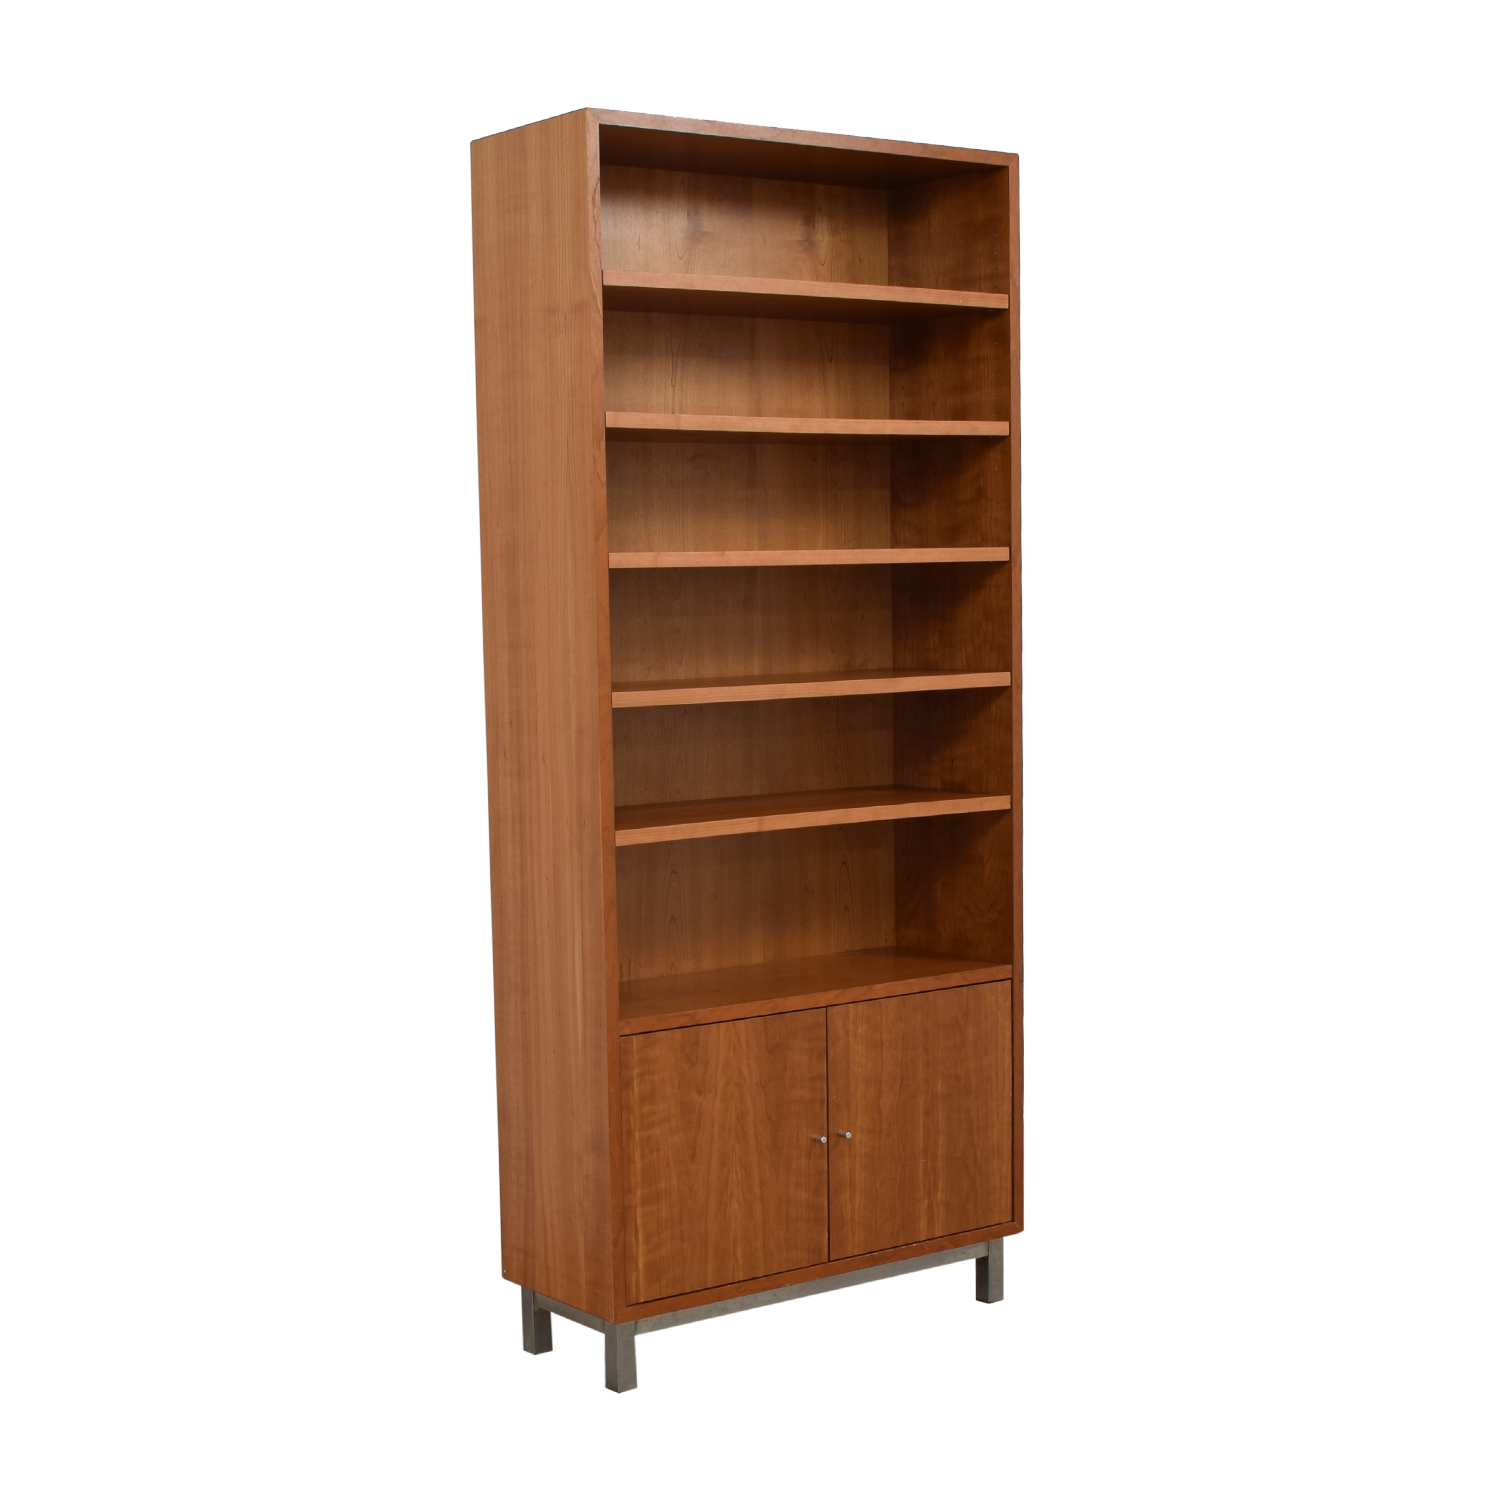 buy Room & Board Bookcase Room & Board Storage